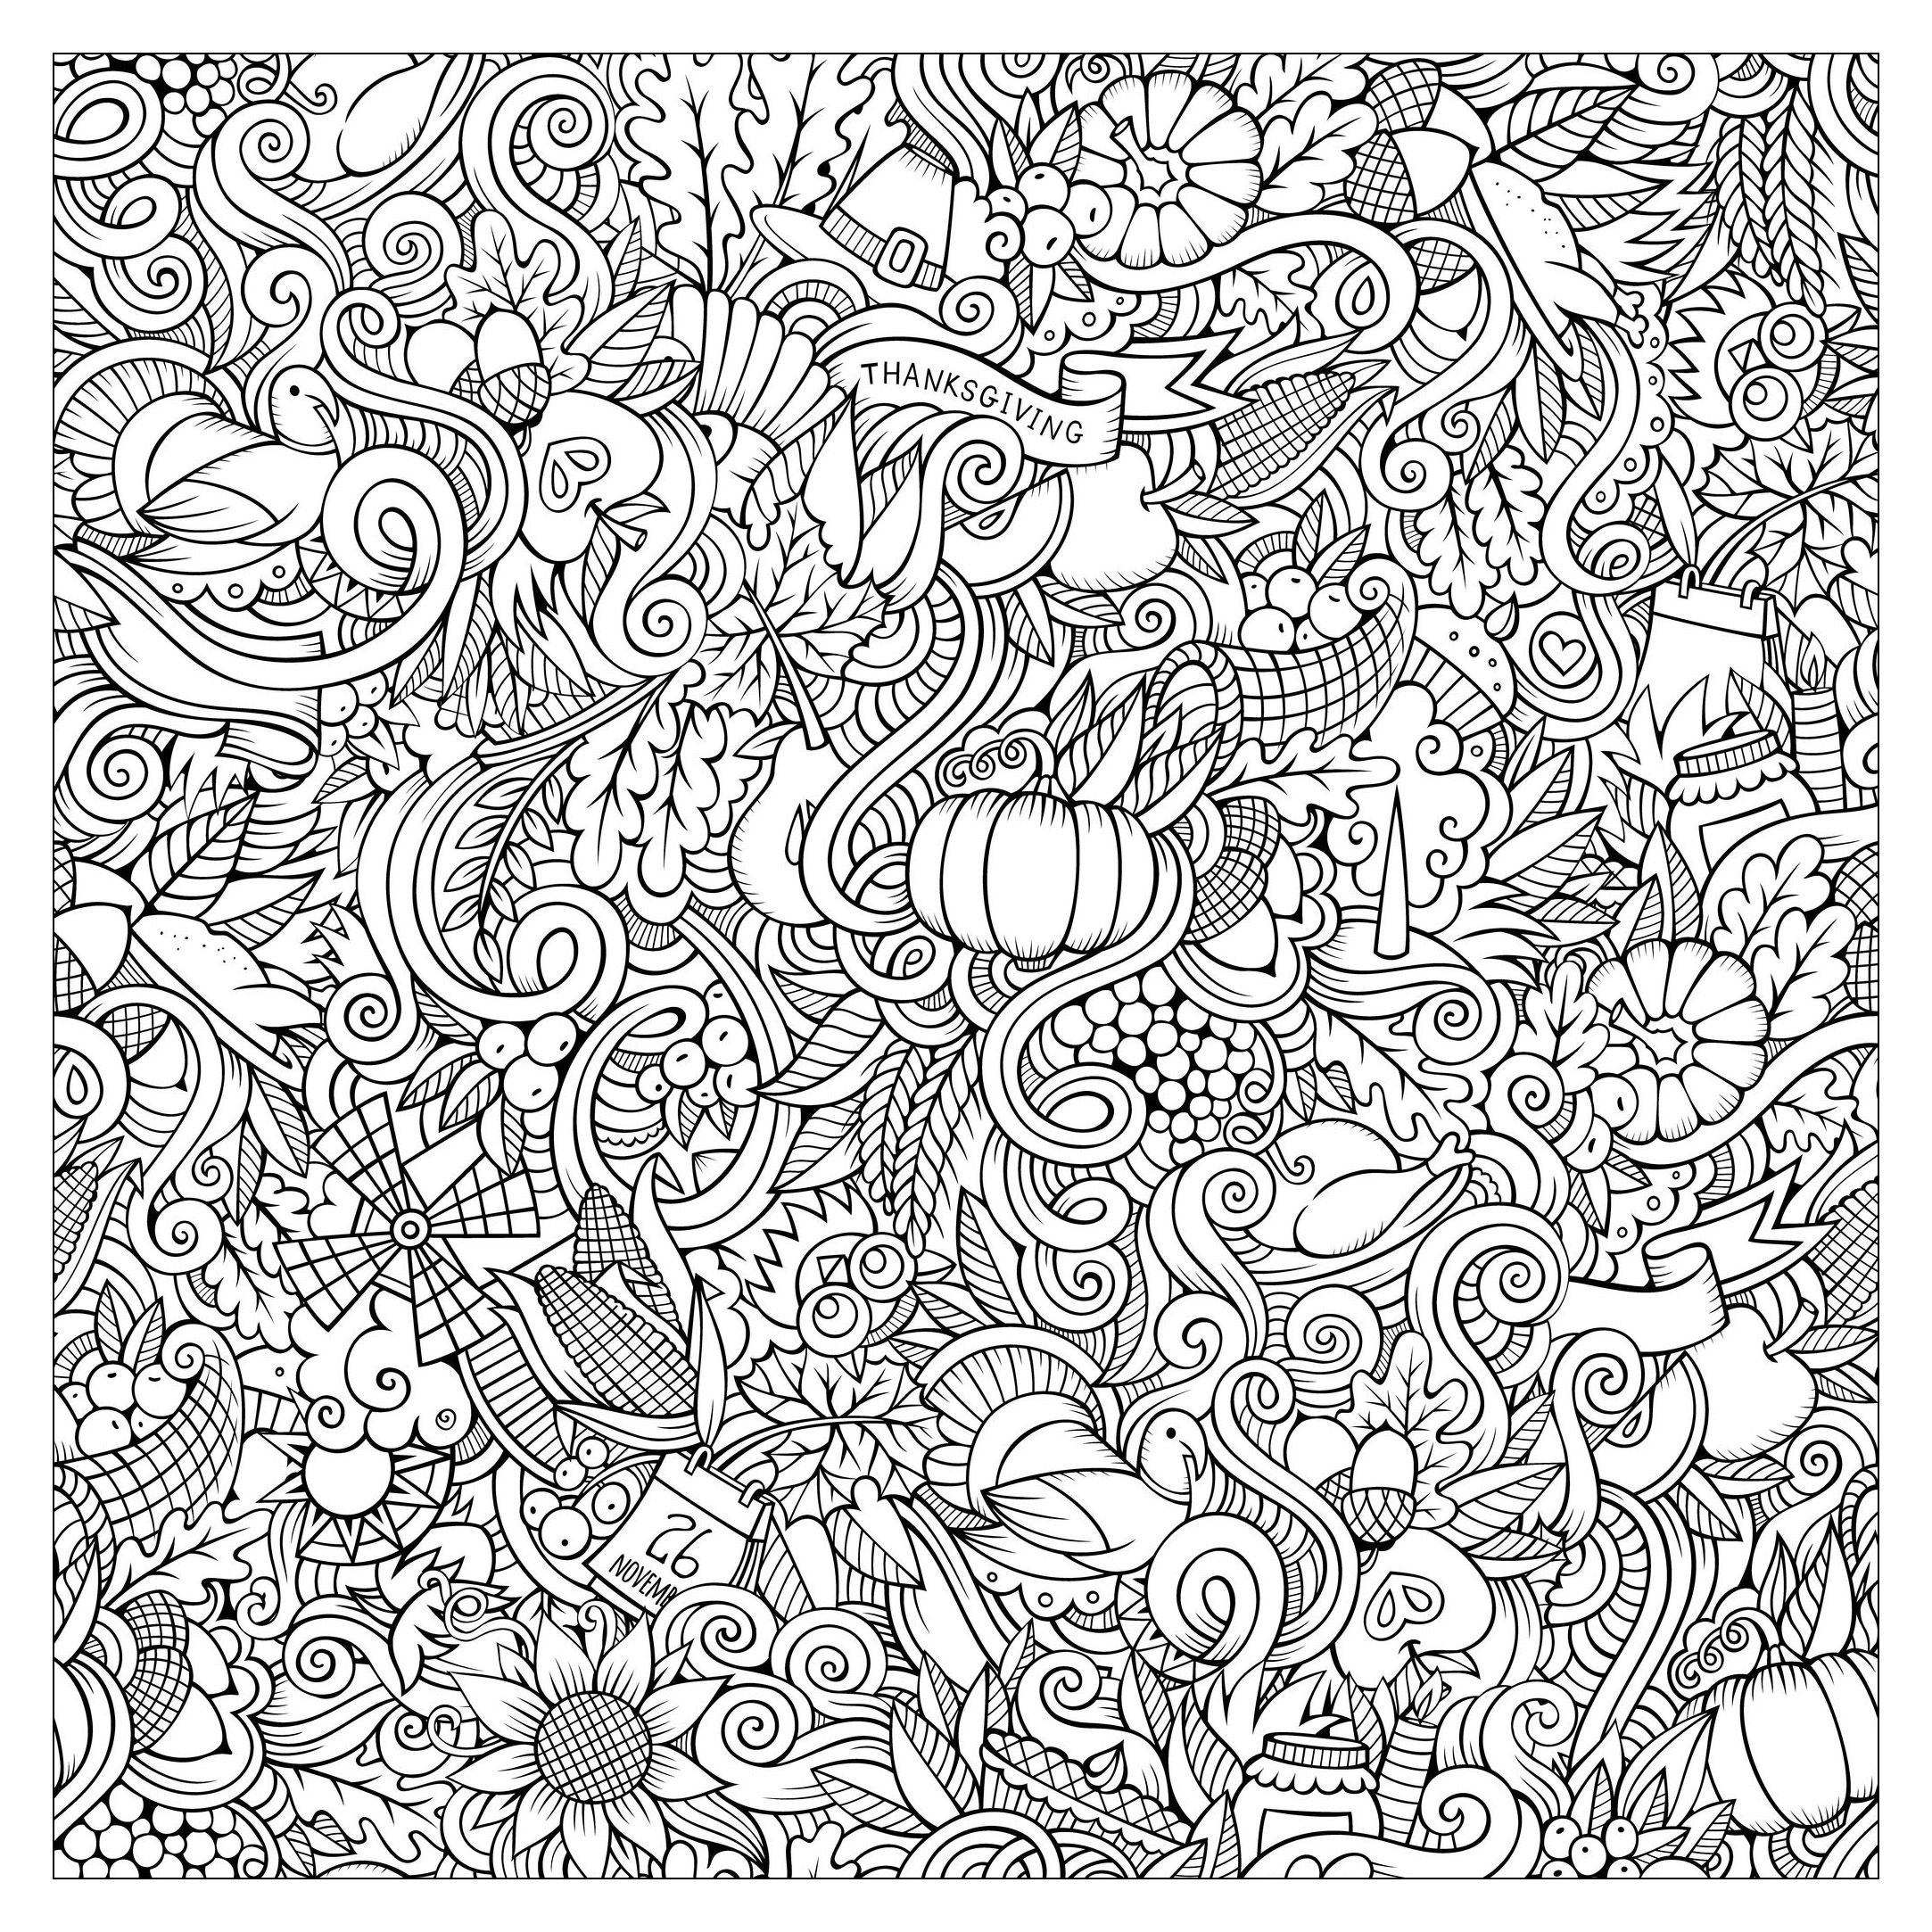 Hand Drawn Doodles To Color On The Subject Of Thanksgiving Autumn Thanksgiving Coloring Pages Fall Coloring Pages Coloring Pages